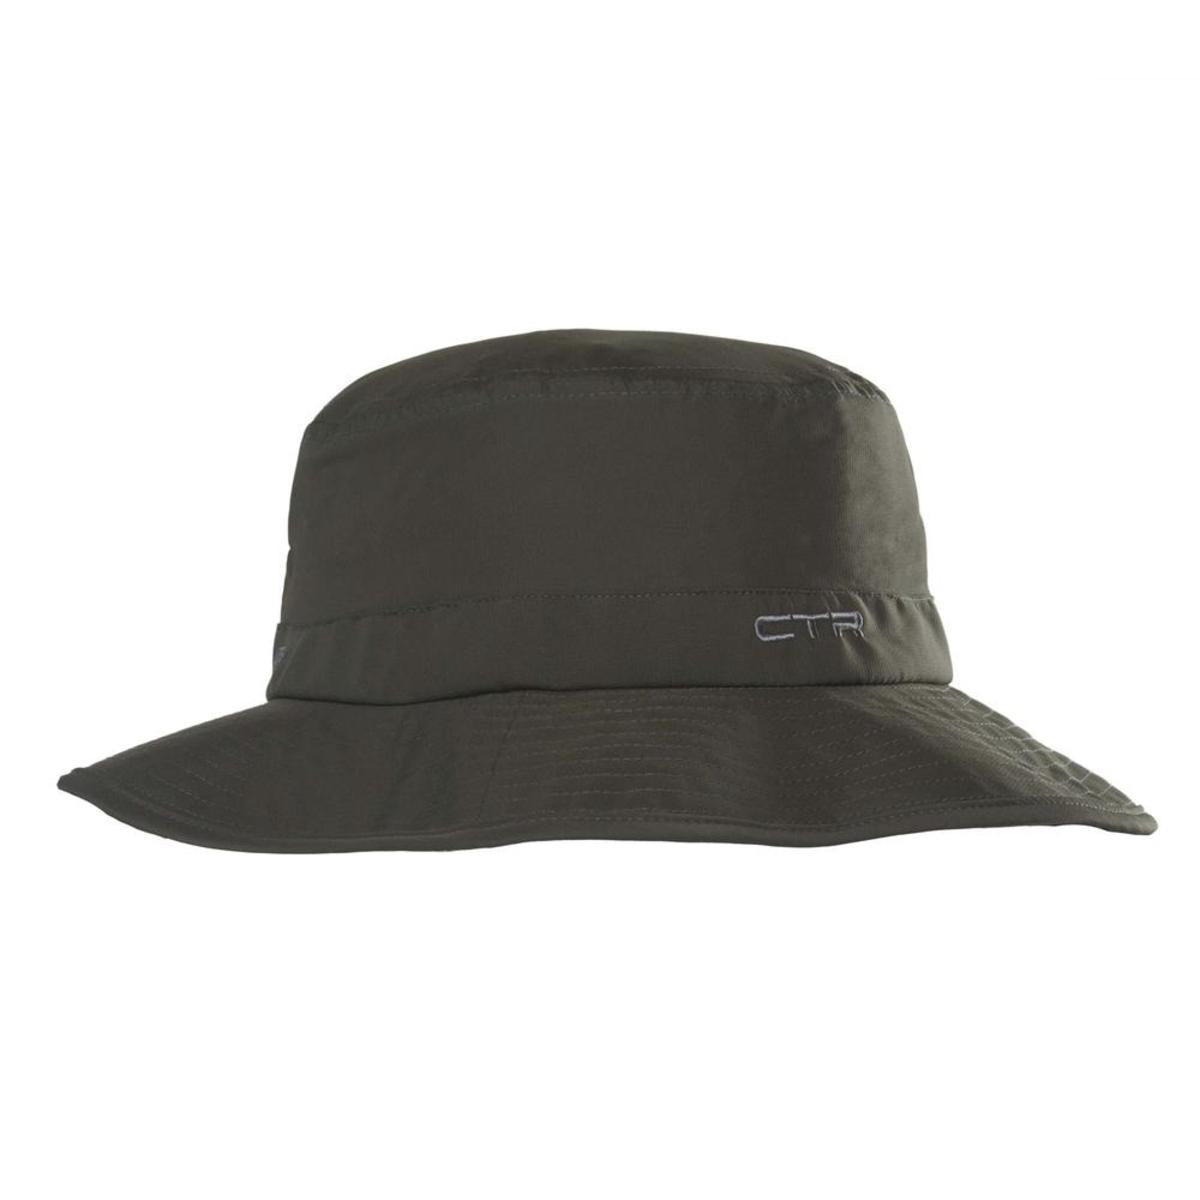 CTR by Chaos Summit Pack-It Hat